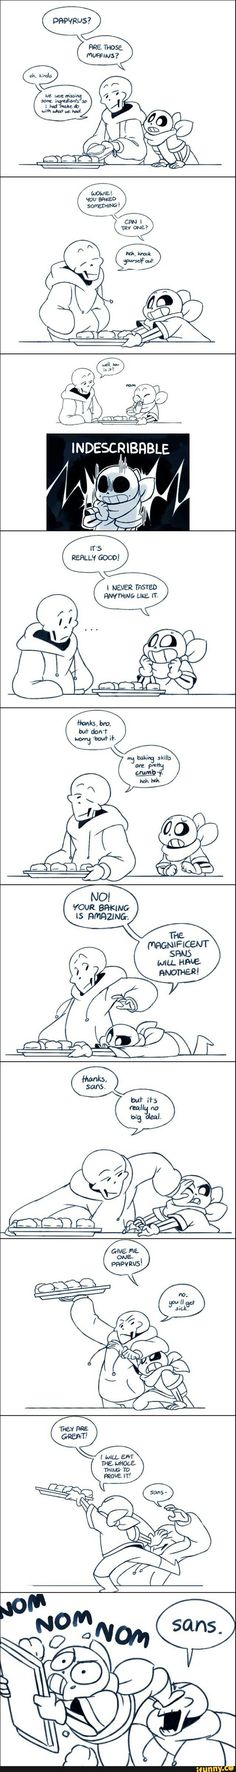 underswap, fandomlife, struggles Undertale Memes, Undertale Fanart, Undertale Comic, Underswap Papyrus, Cute Comics, Funny Comics, Sans And Papyrus, Food Poisoning, Dear God